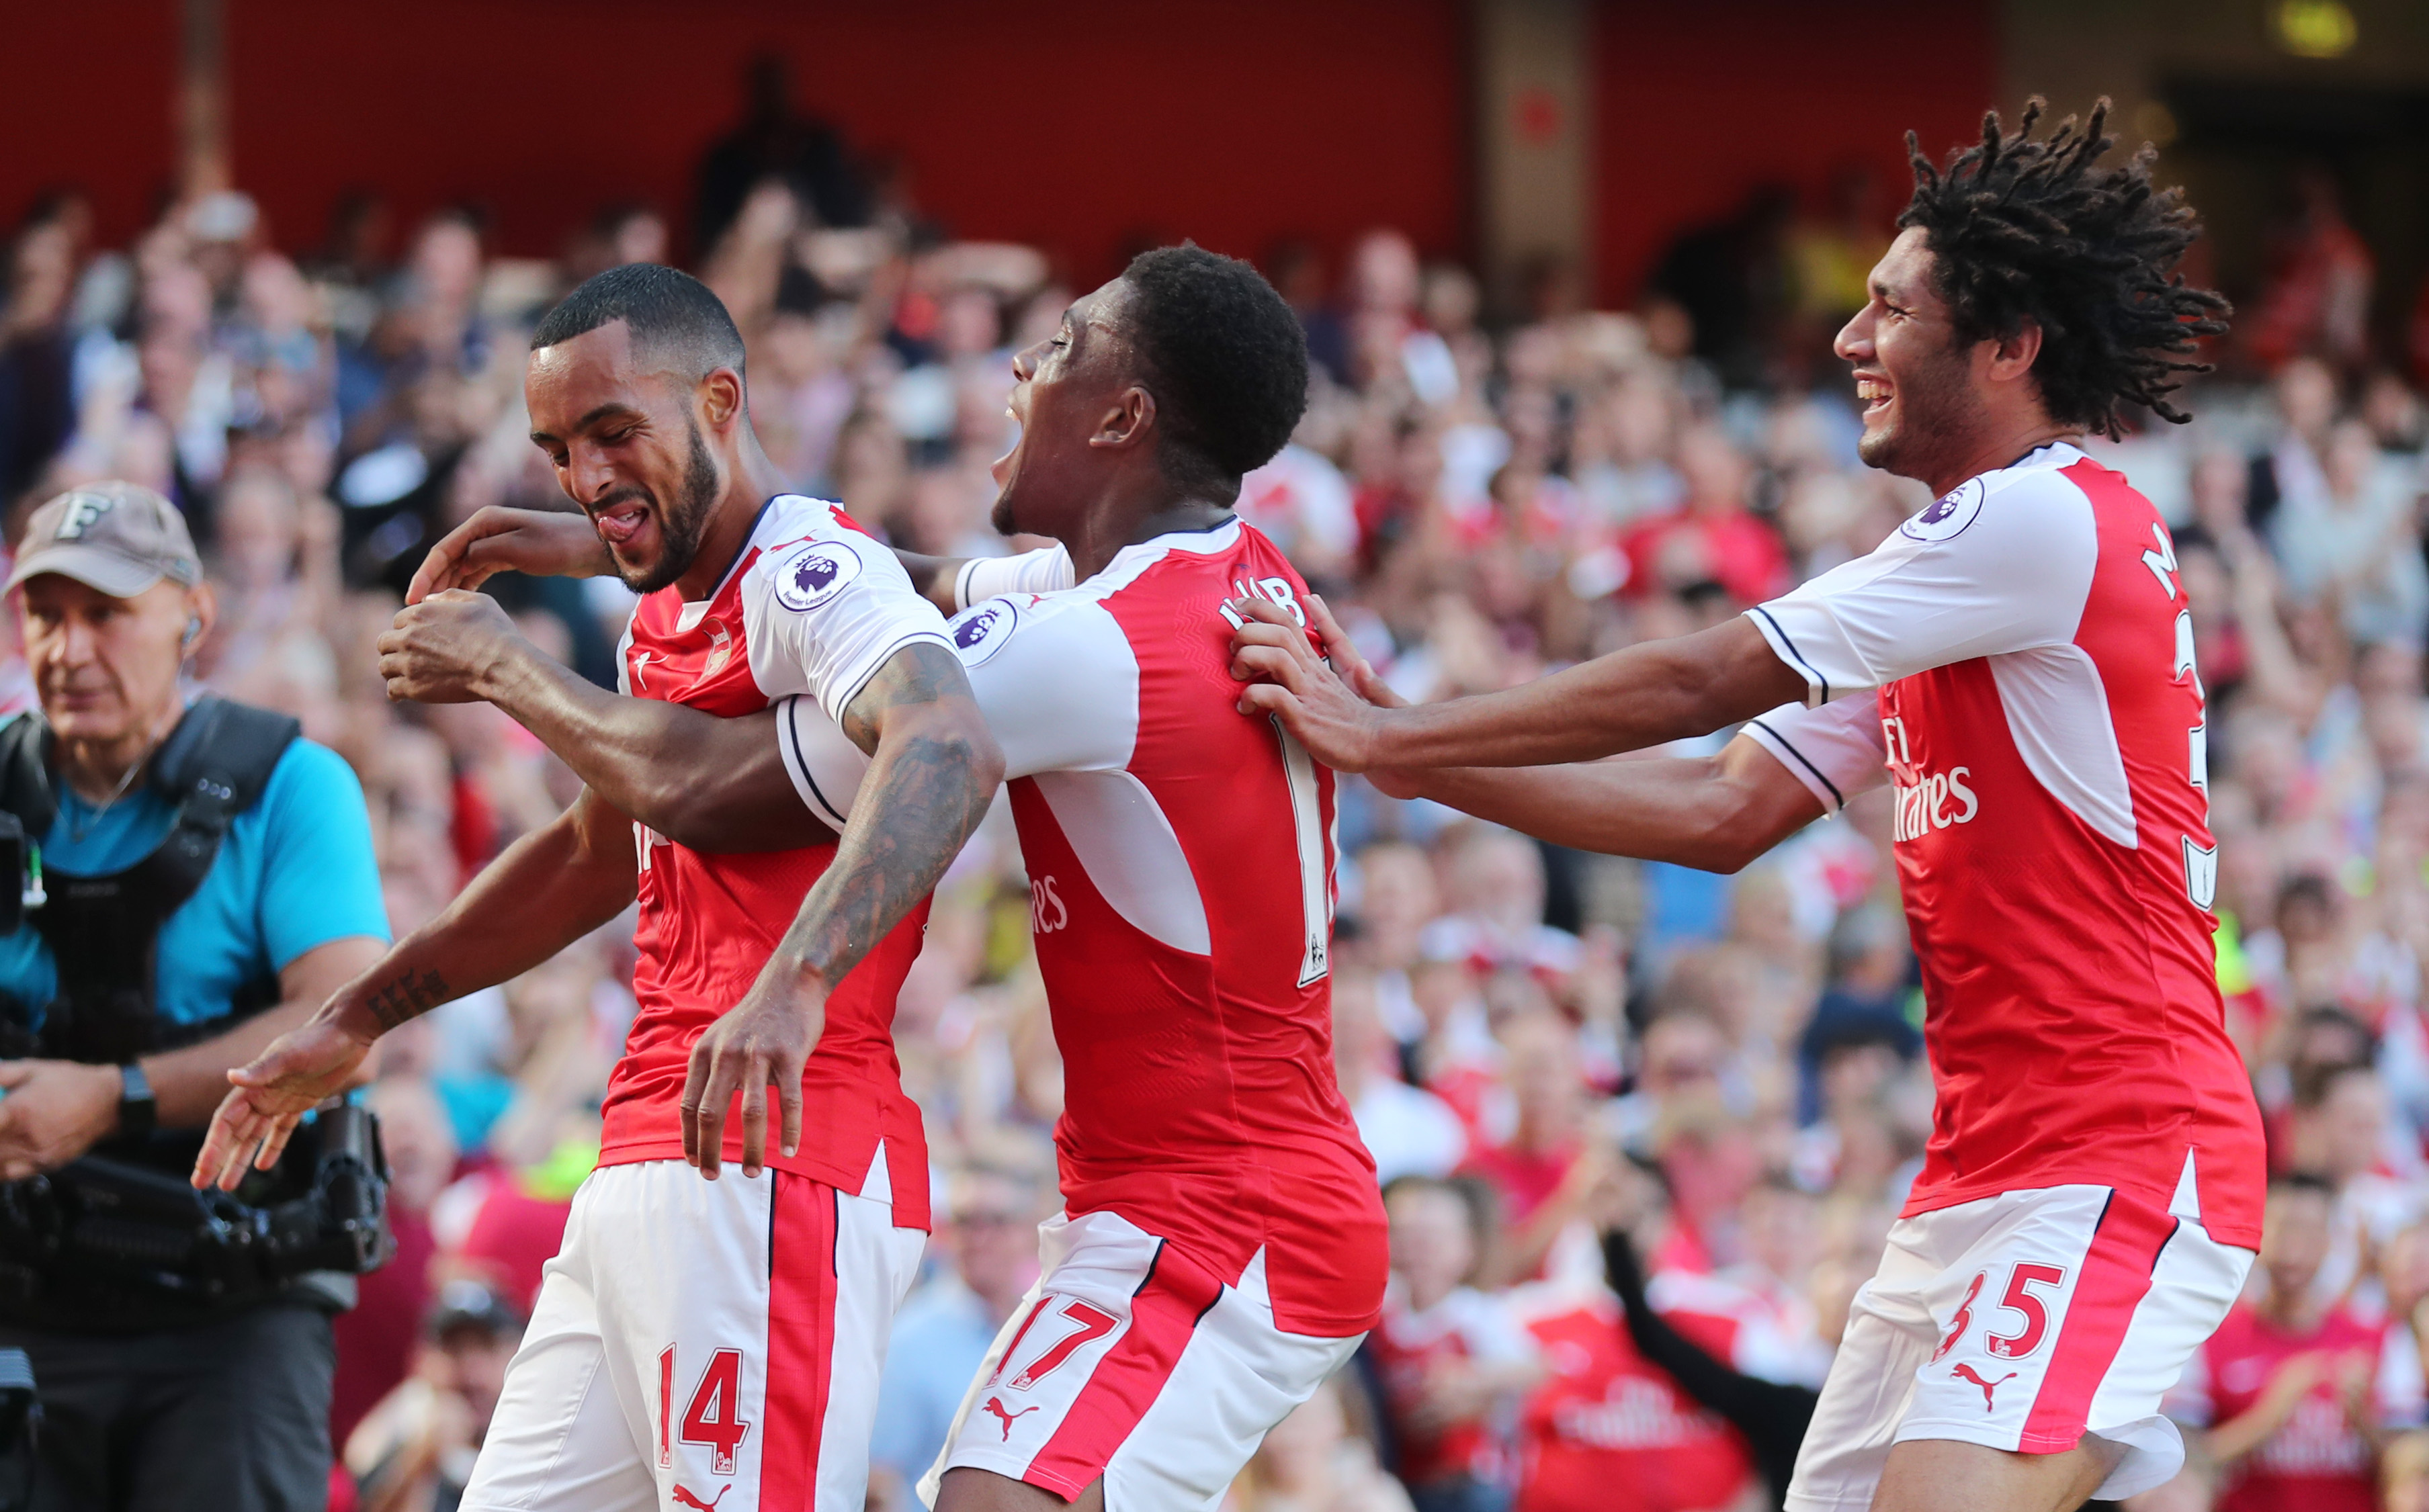 Britain Football Soccer - Arsenal v Liverpool - Premier League - Emirates Stadium - 14/8/16 Arsenal's Theo Walcott celebrates scoring their first goal with teammates Reuters / Eddie Keogh Livepic EDITORIAL USE ONLY. No use with unauthorized audio, video, data, fixture lists, club/league logos or